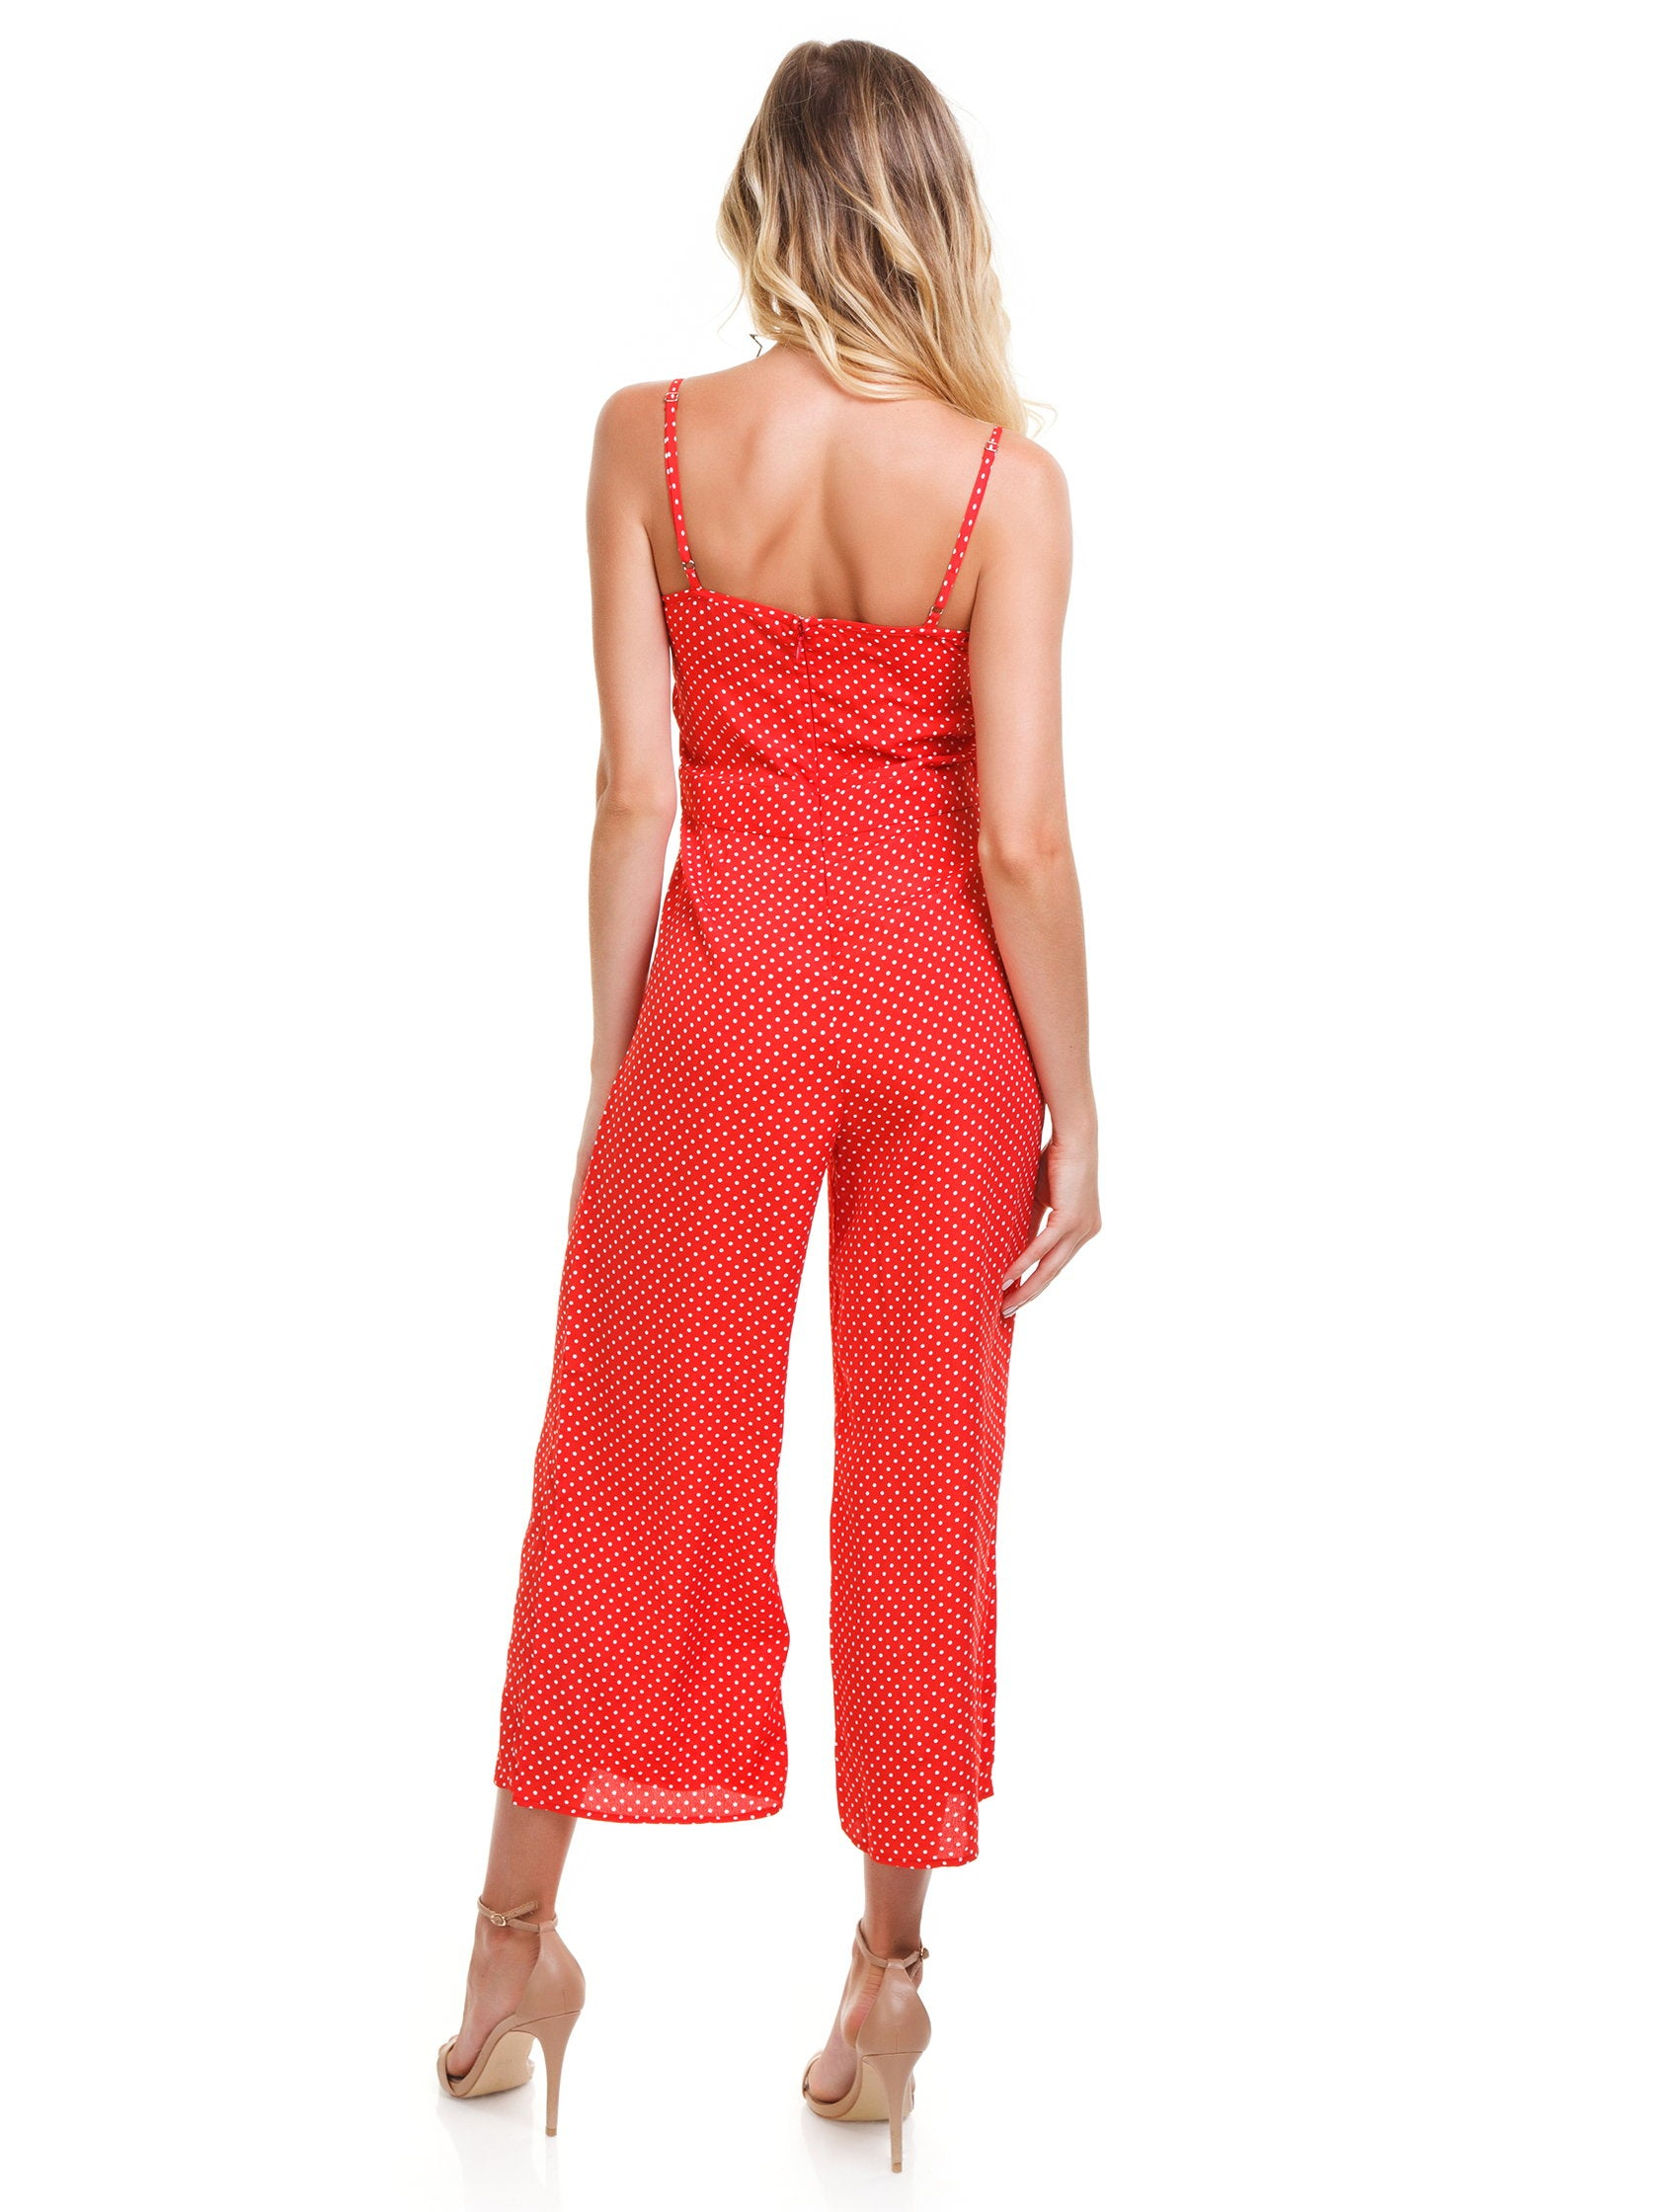 Women wearing a jumpsuit rental from Blue Life called Tied Up Jumpsuit